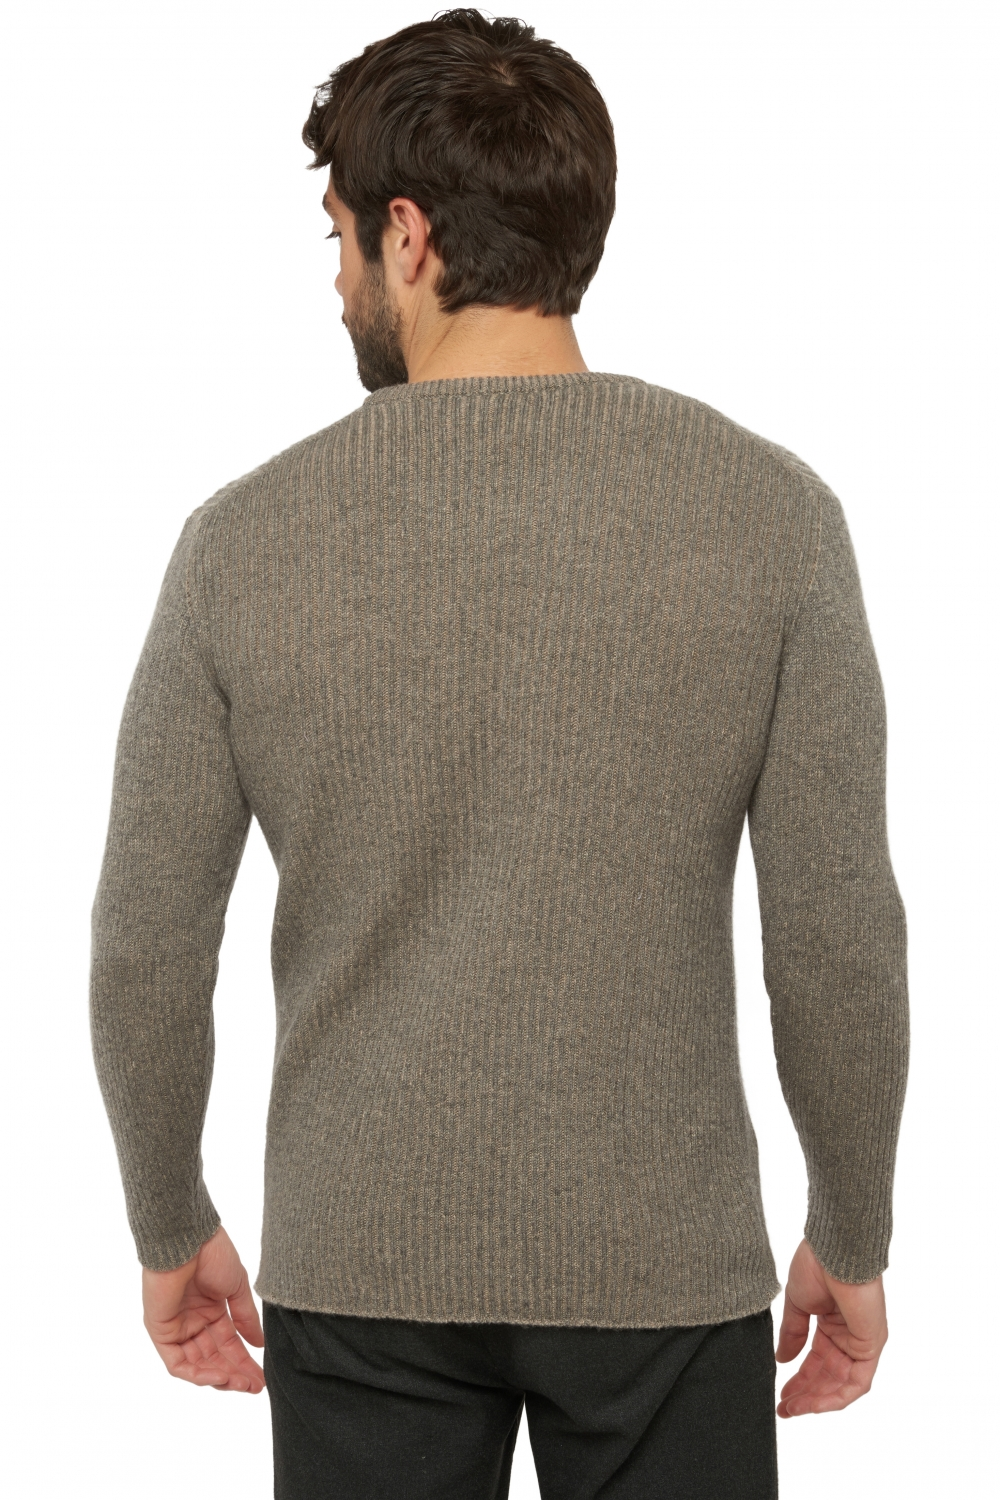 Cashmere men round necks jojen dove chine   natural brown xl